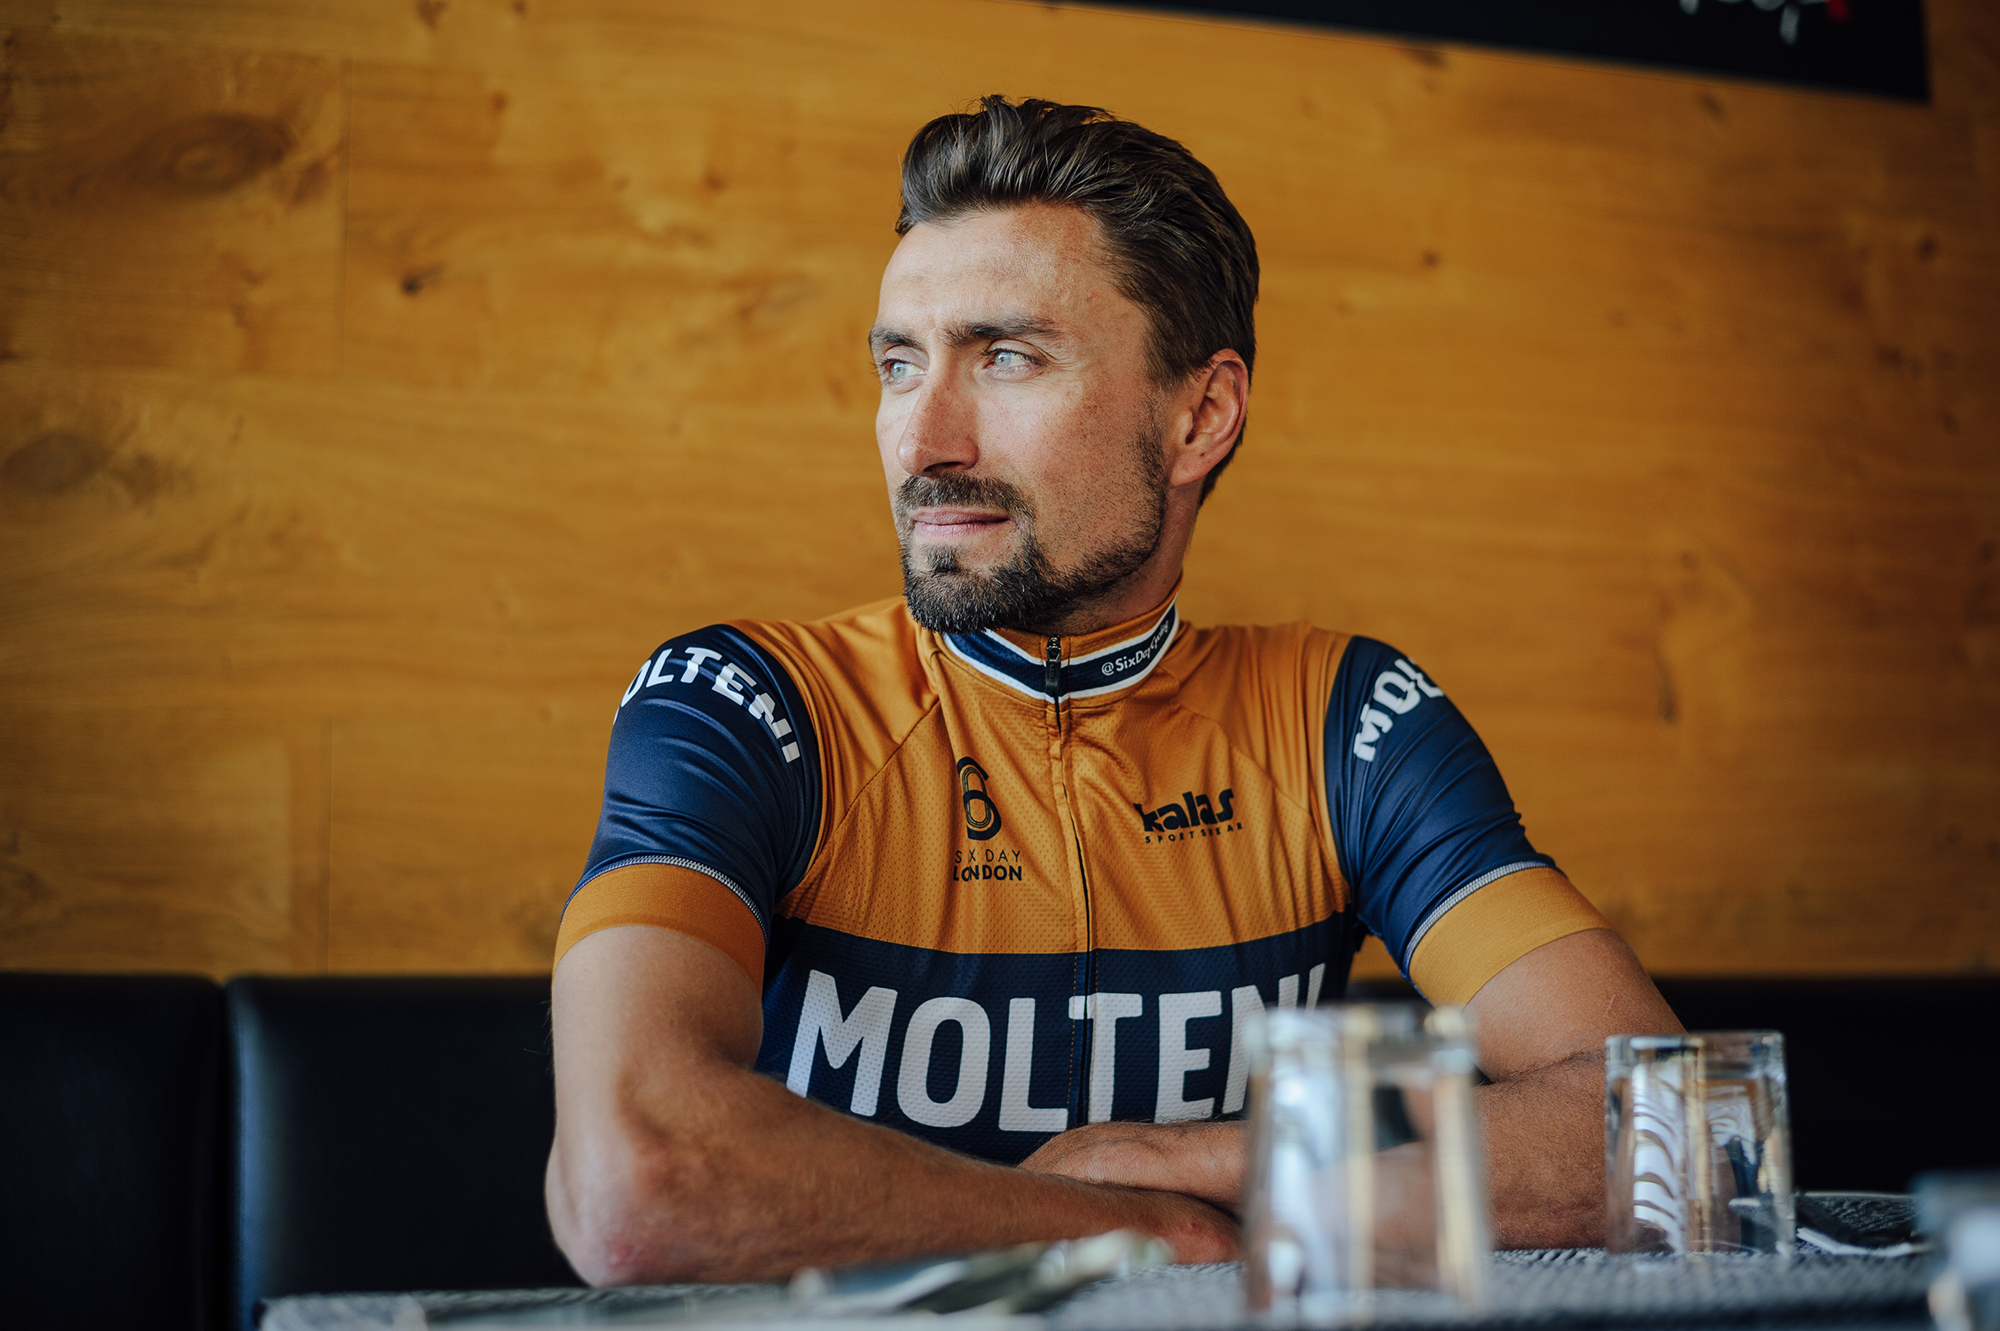 a cyclist sat at a table in the kalas molteni jersey.